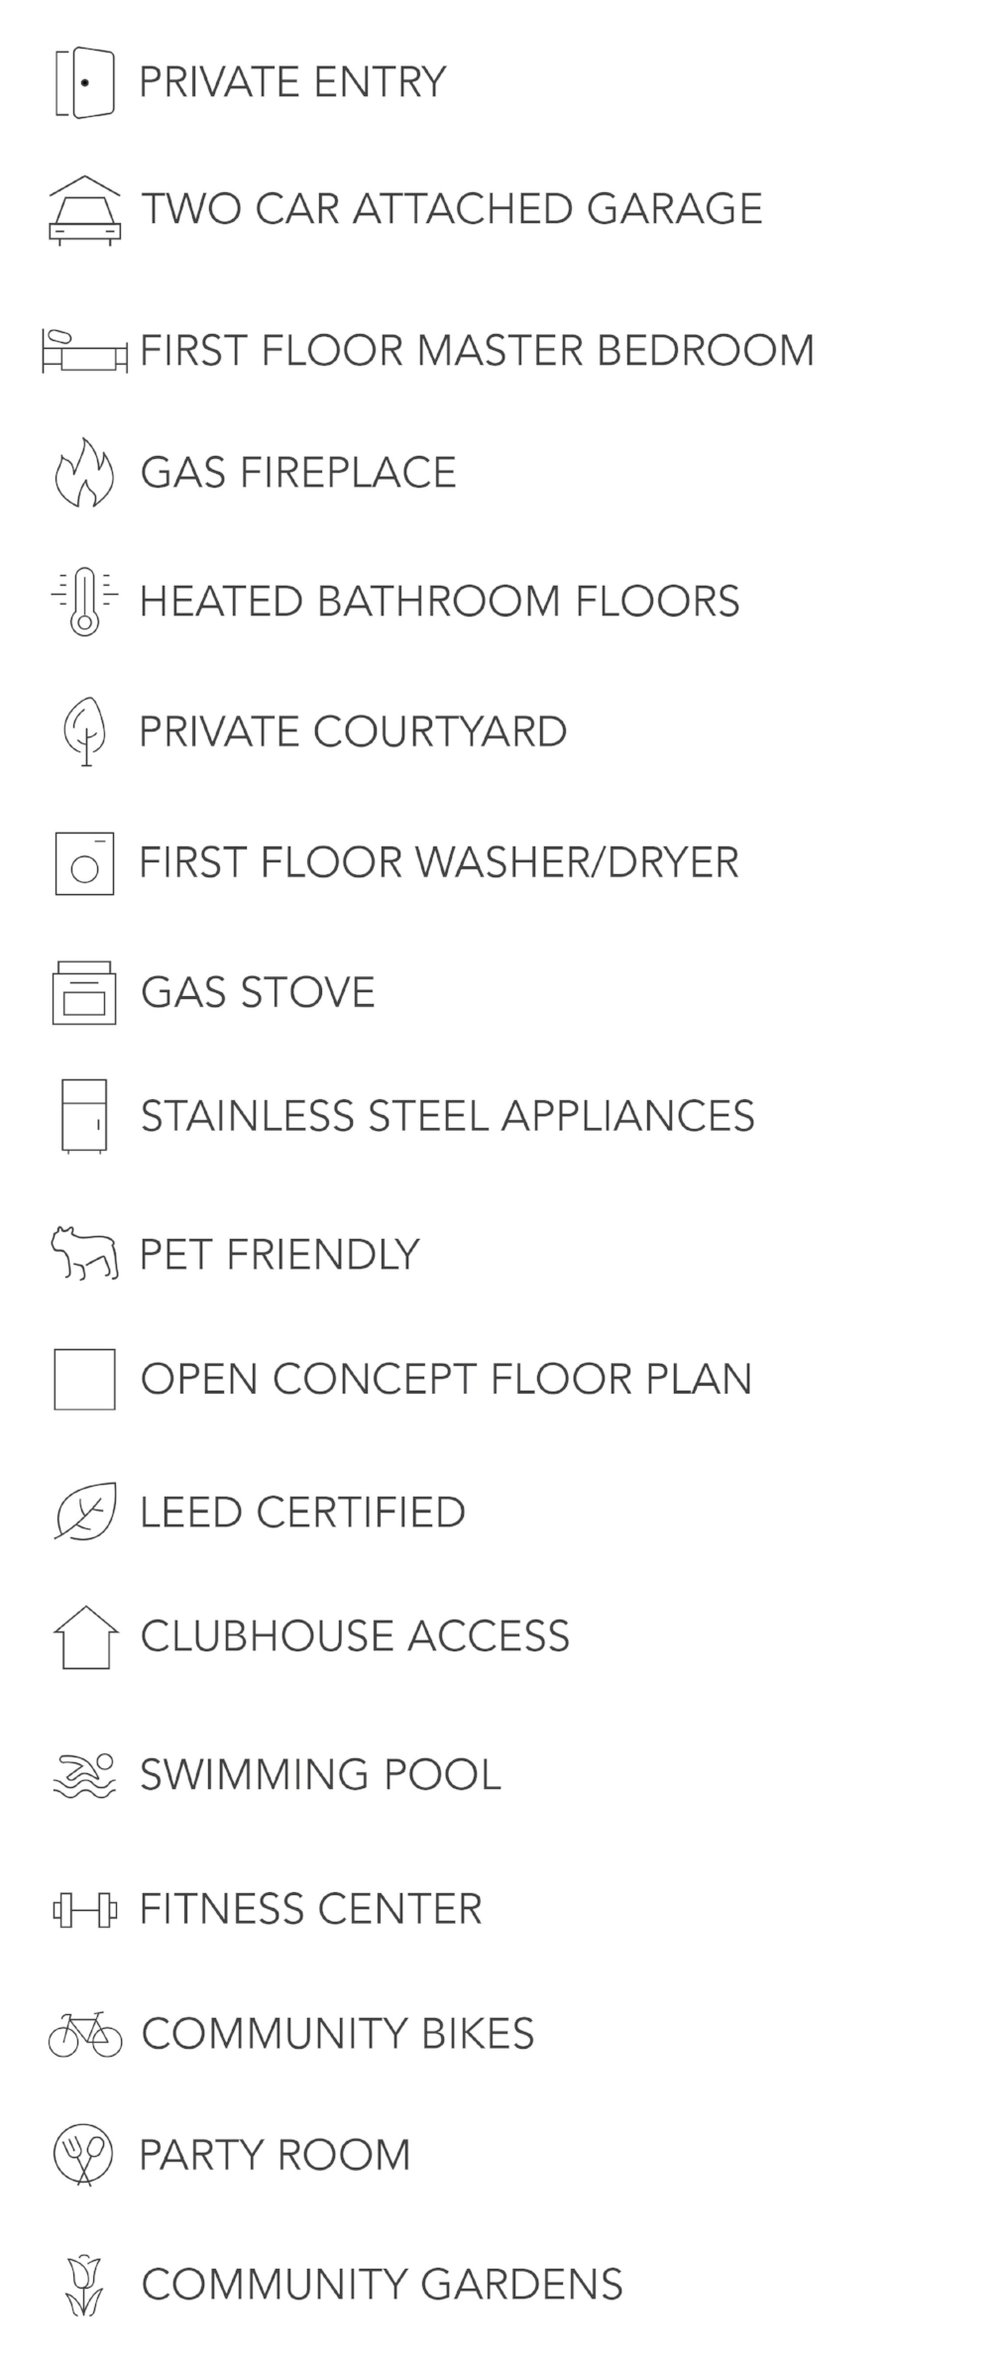 Townhome Amenities List.jpg